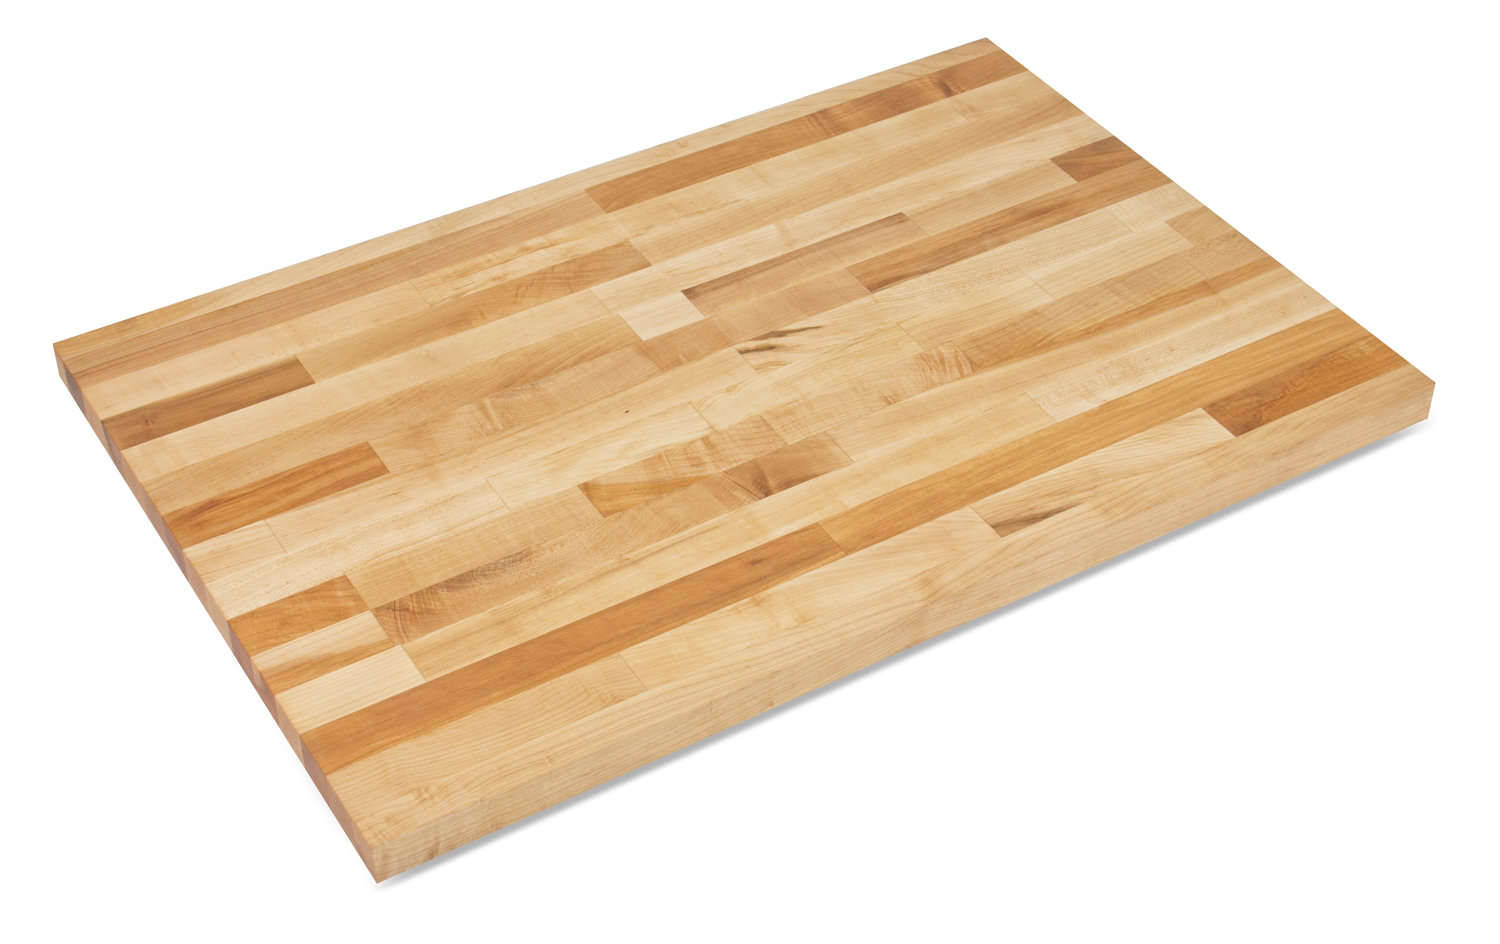 1-3/4 inch thick commercial maple butcher block counters 30 inches wide